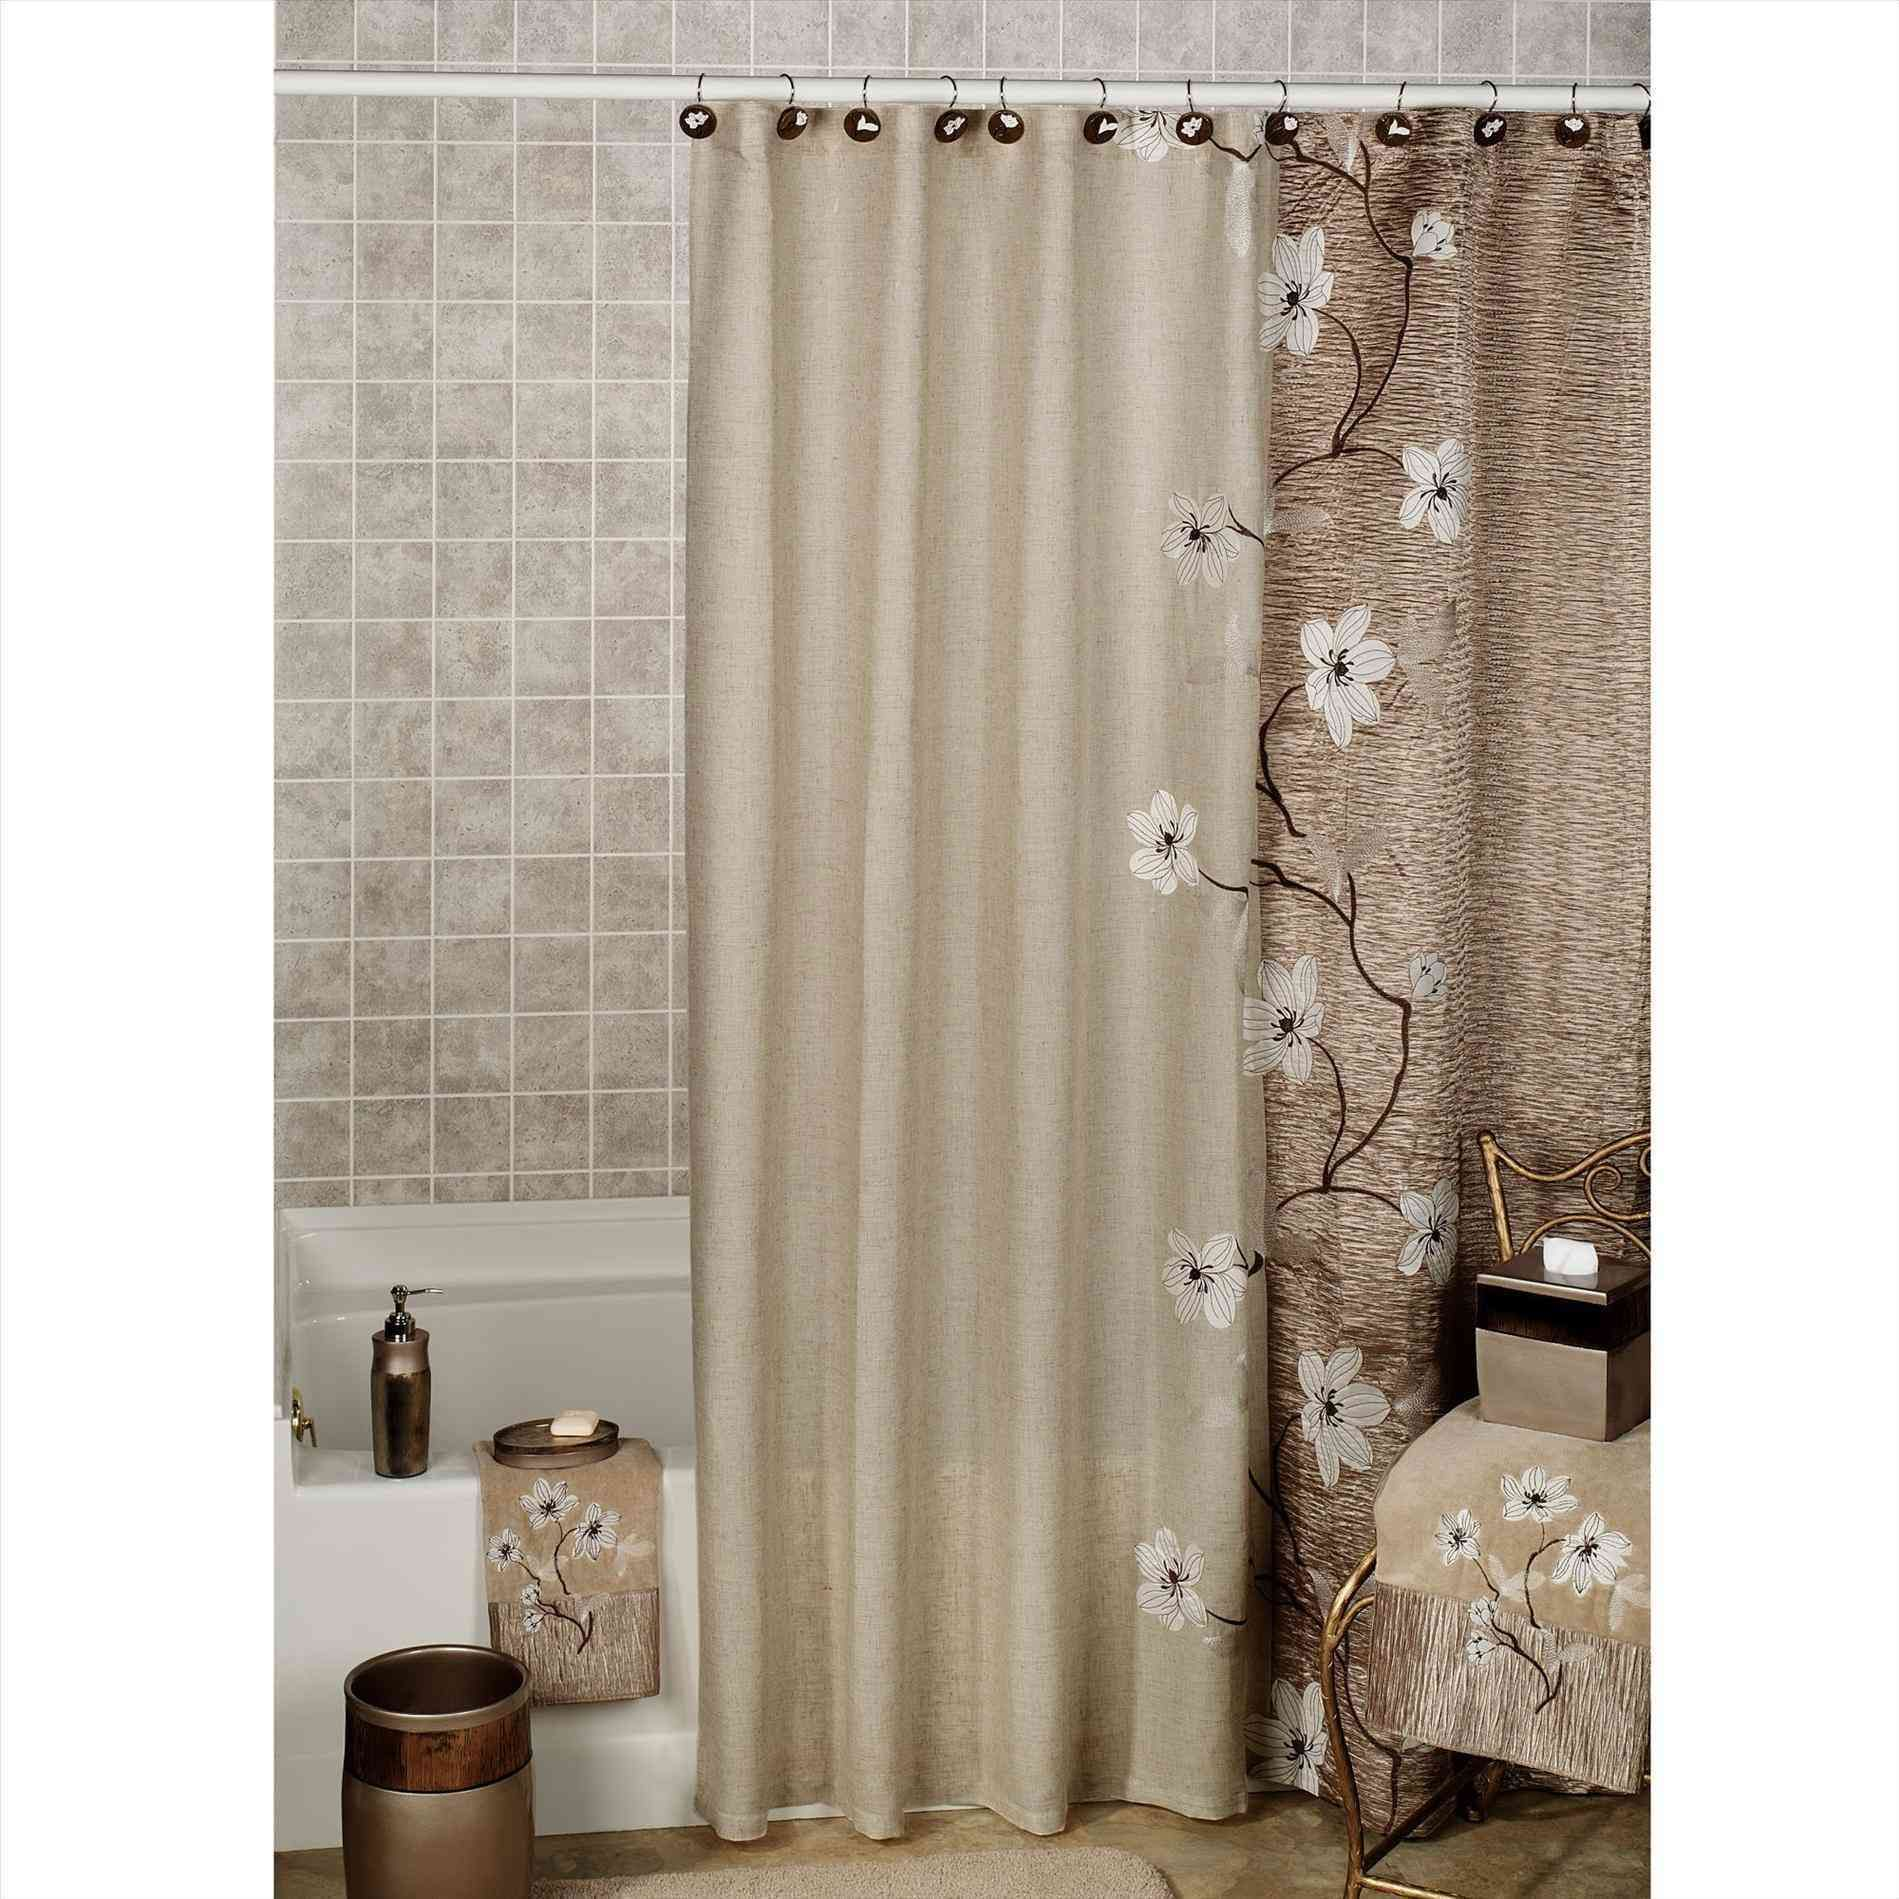 New Post bathroom rug and shower curtain sets  Floral shower